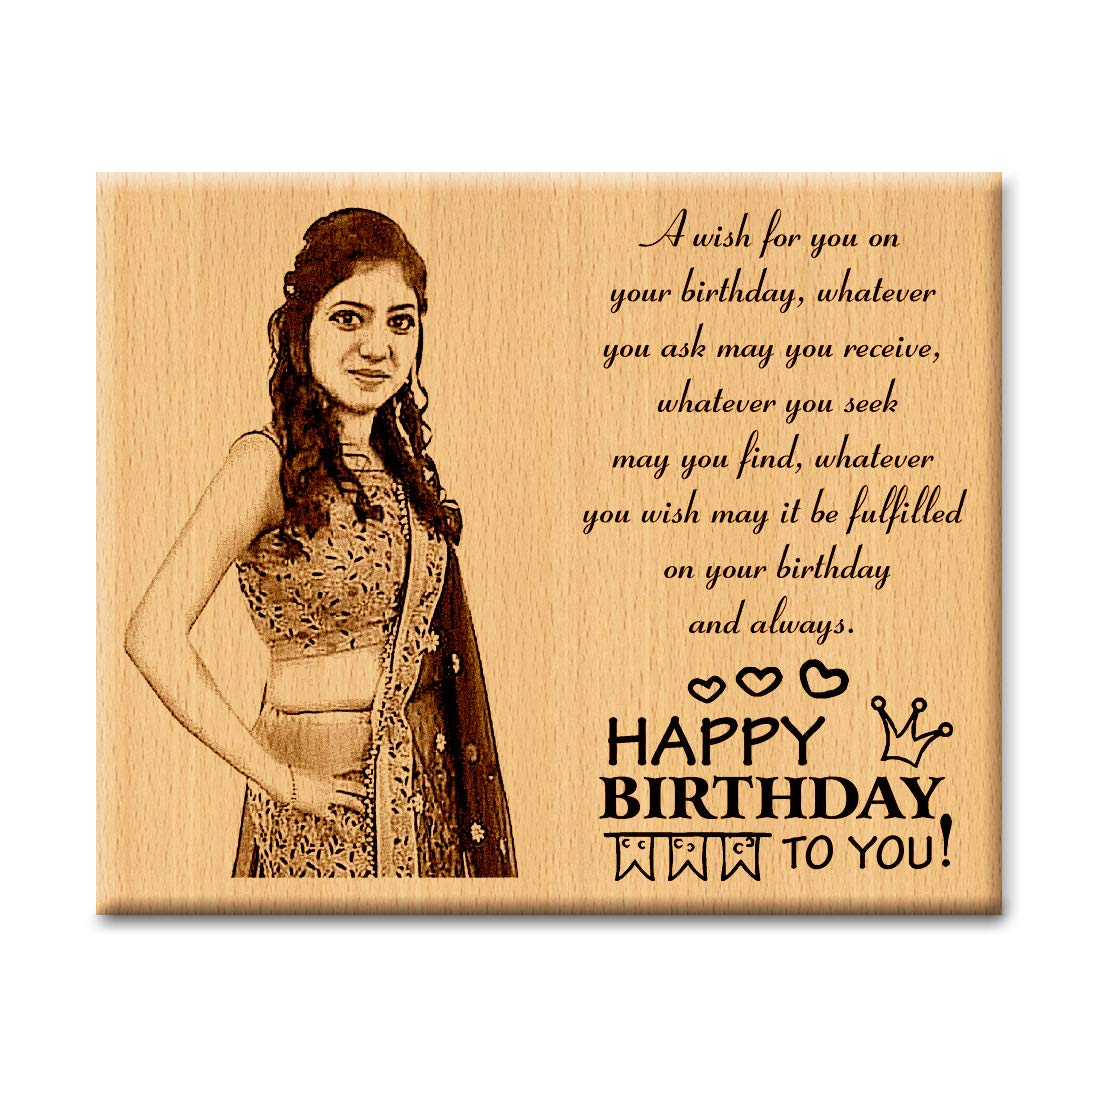 Buy Incredible Gifts India Customized Wooden Happy Birthday Frame Gifts For Girlfriend And Boyfriend 10 X 8 Inch Online At Low Prices In India Amazon In